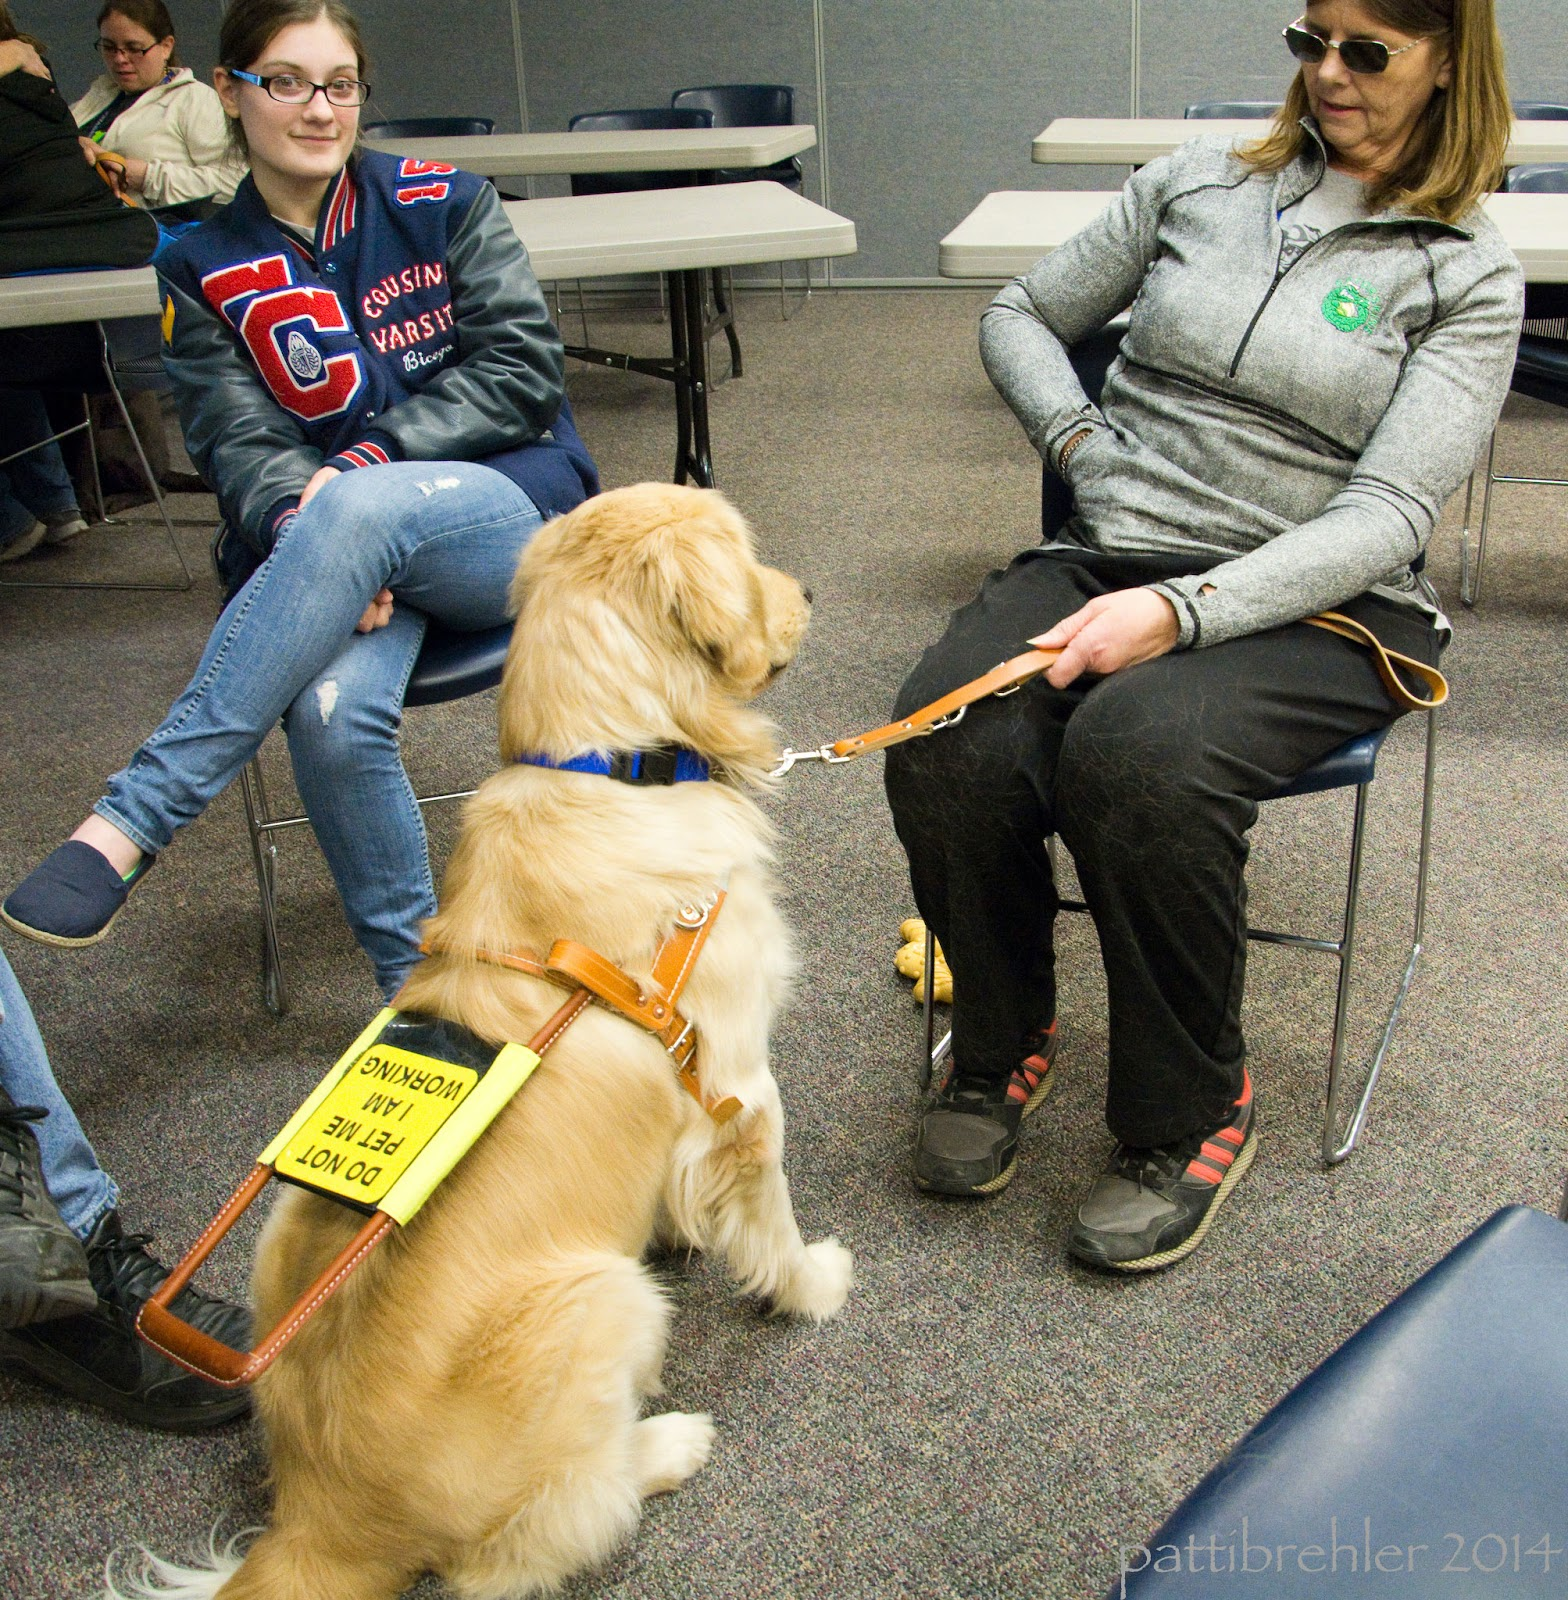 In this photo,  only the teenager (on the left) and the woman with sunglasses are in view. The teen has her legs crossed, sitting in the chair. The woman is reaching into her shirt pocket with her right hand while holding the dog's leash with her left. The golden is sitting in front of her facing her, almost at attention. The dog has a guide harness on.